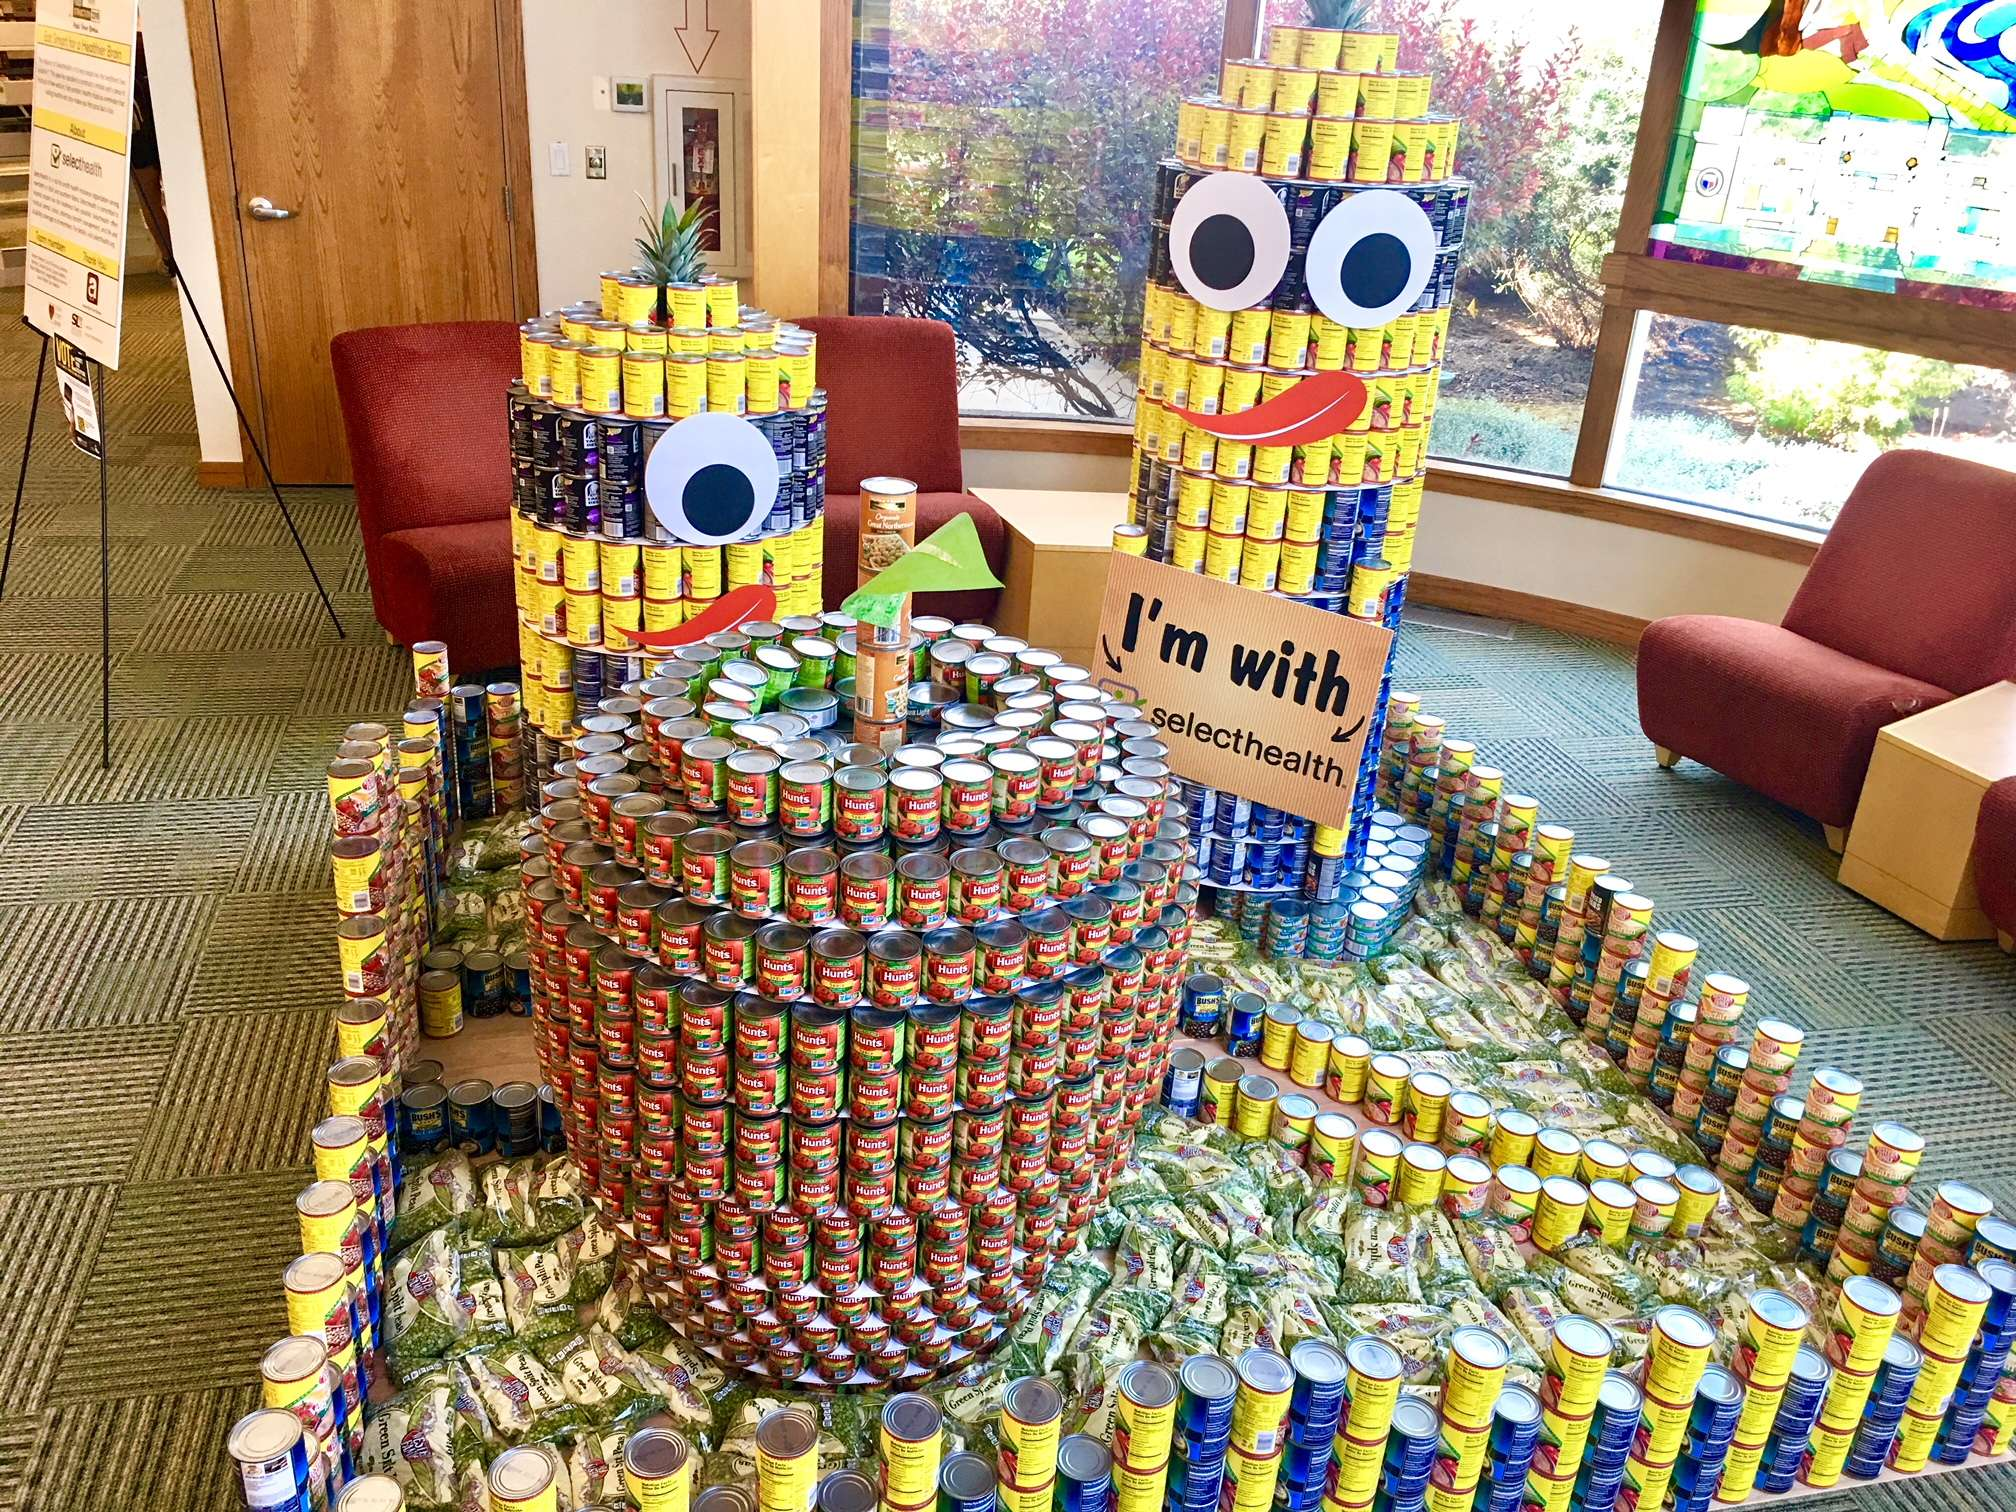 AFS and SelectHealth Bring Minions to Murray to Fight Food Insecurity